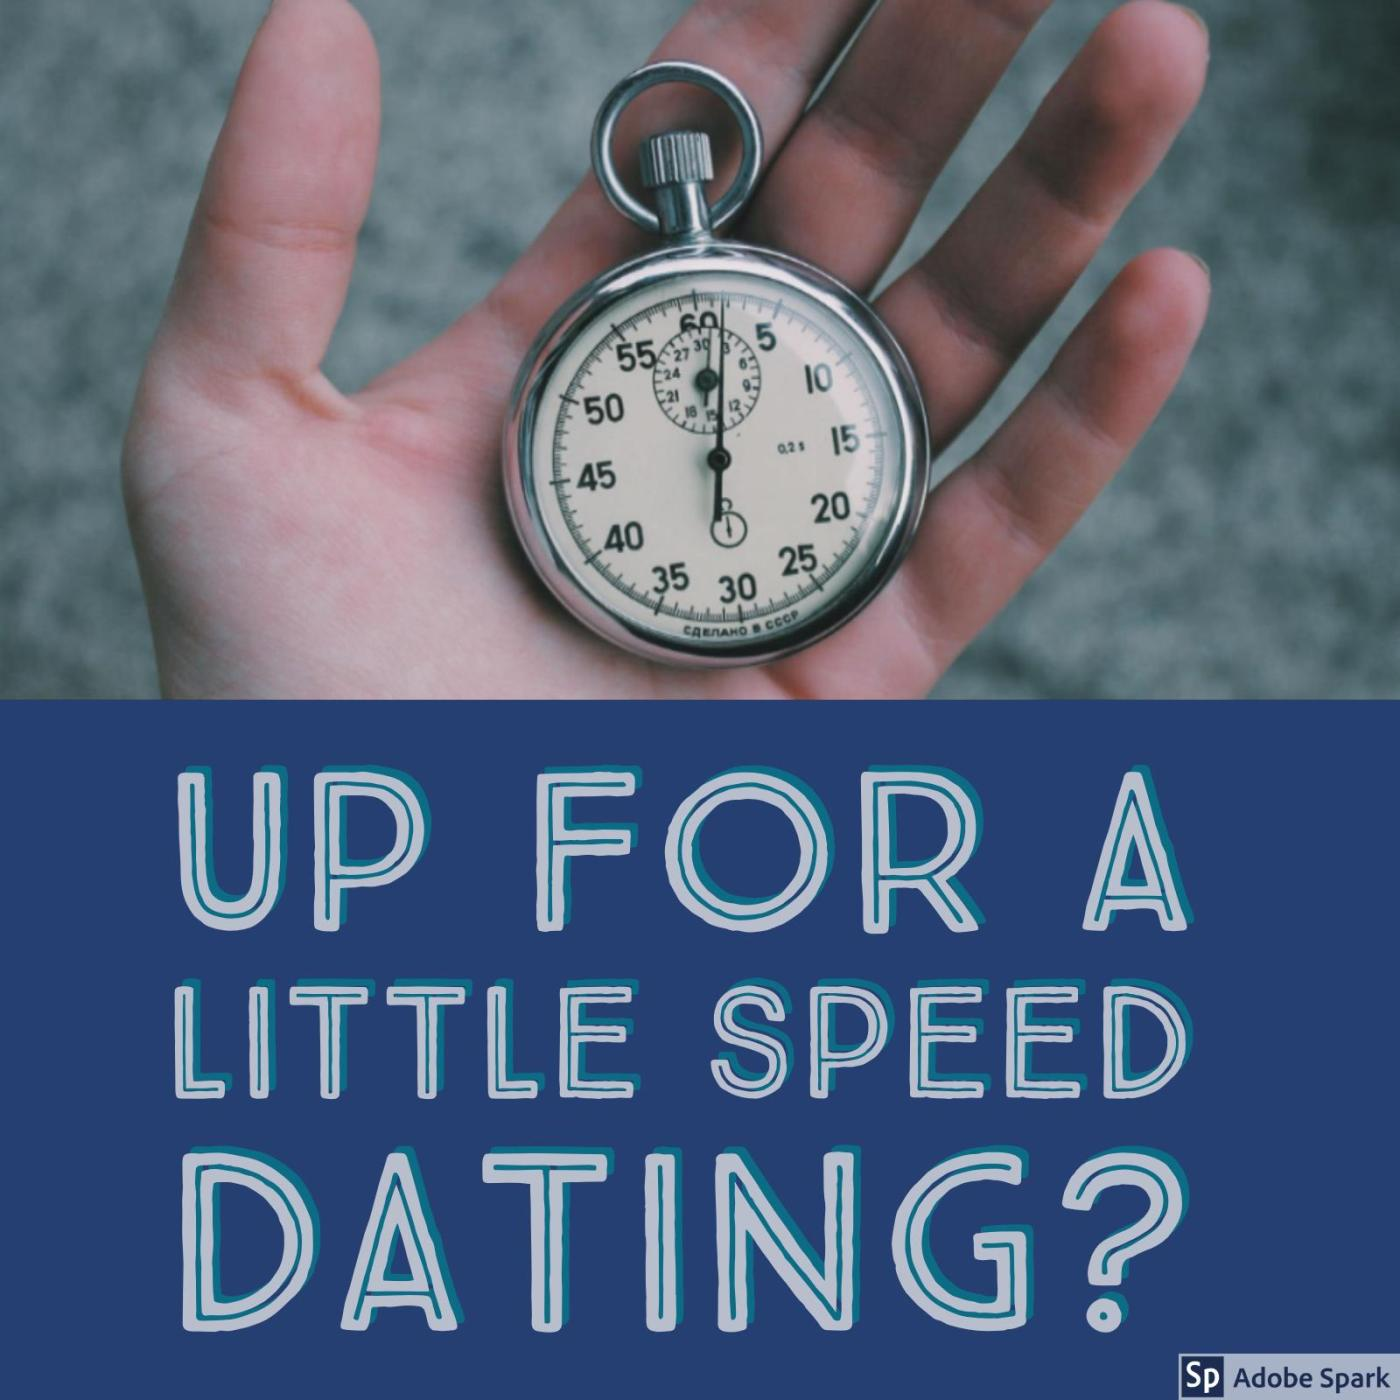 Video - Speed dating advice - bad speed dating questions